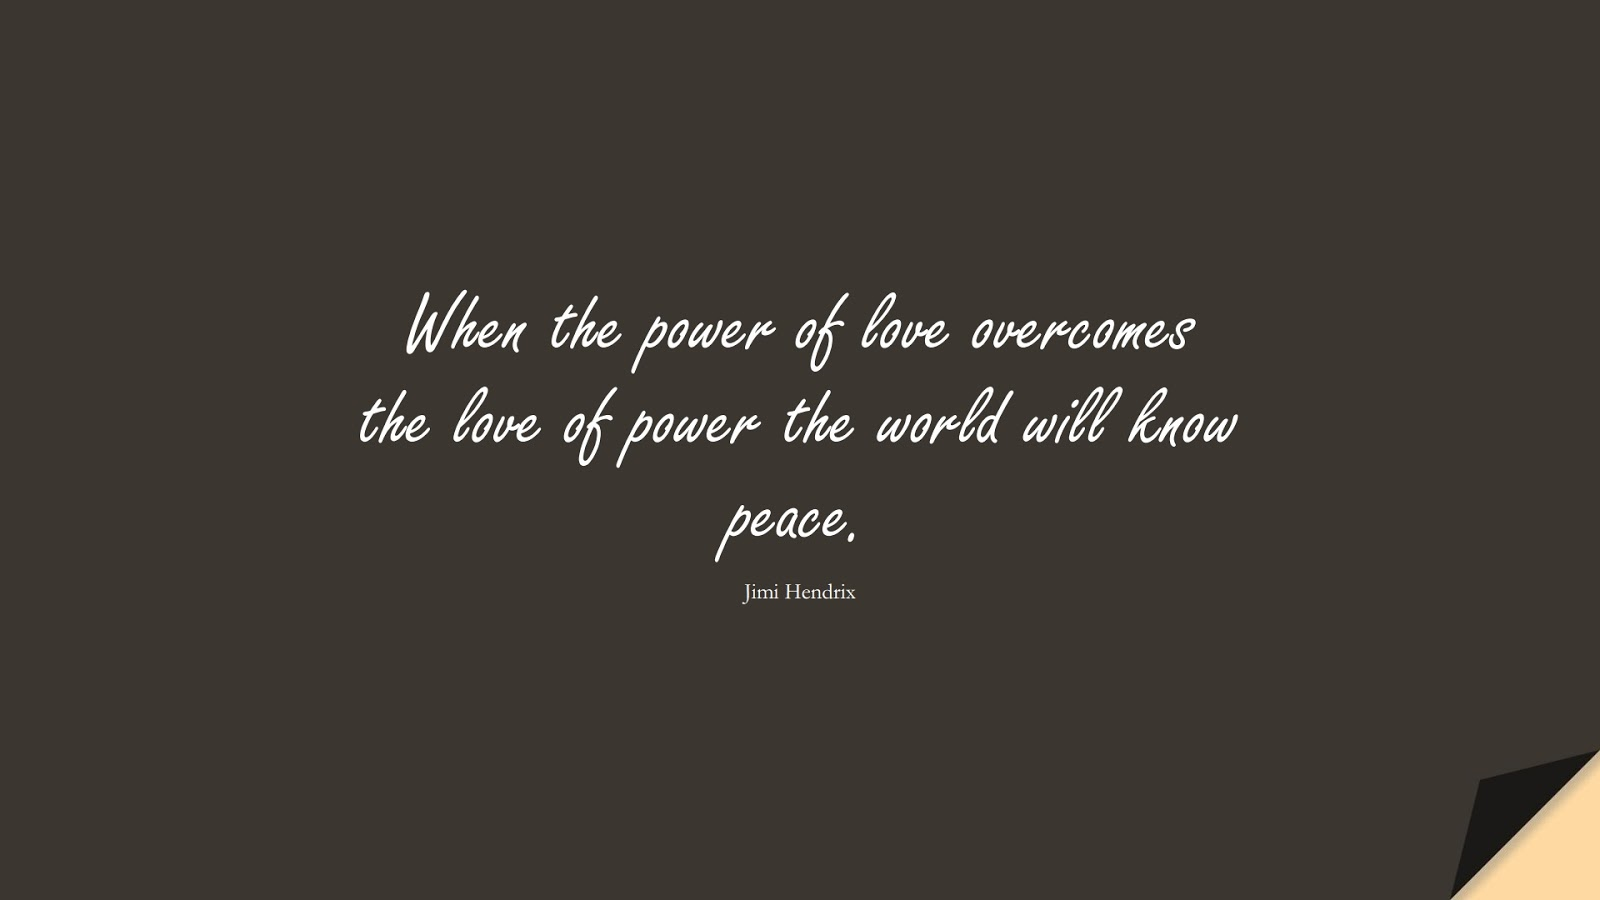 When the power of love overcomes the love of power the world will know peace. (Jimi Hendrix);  #ShortQuotes